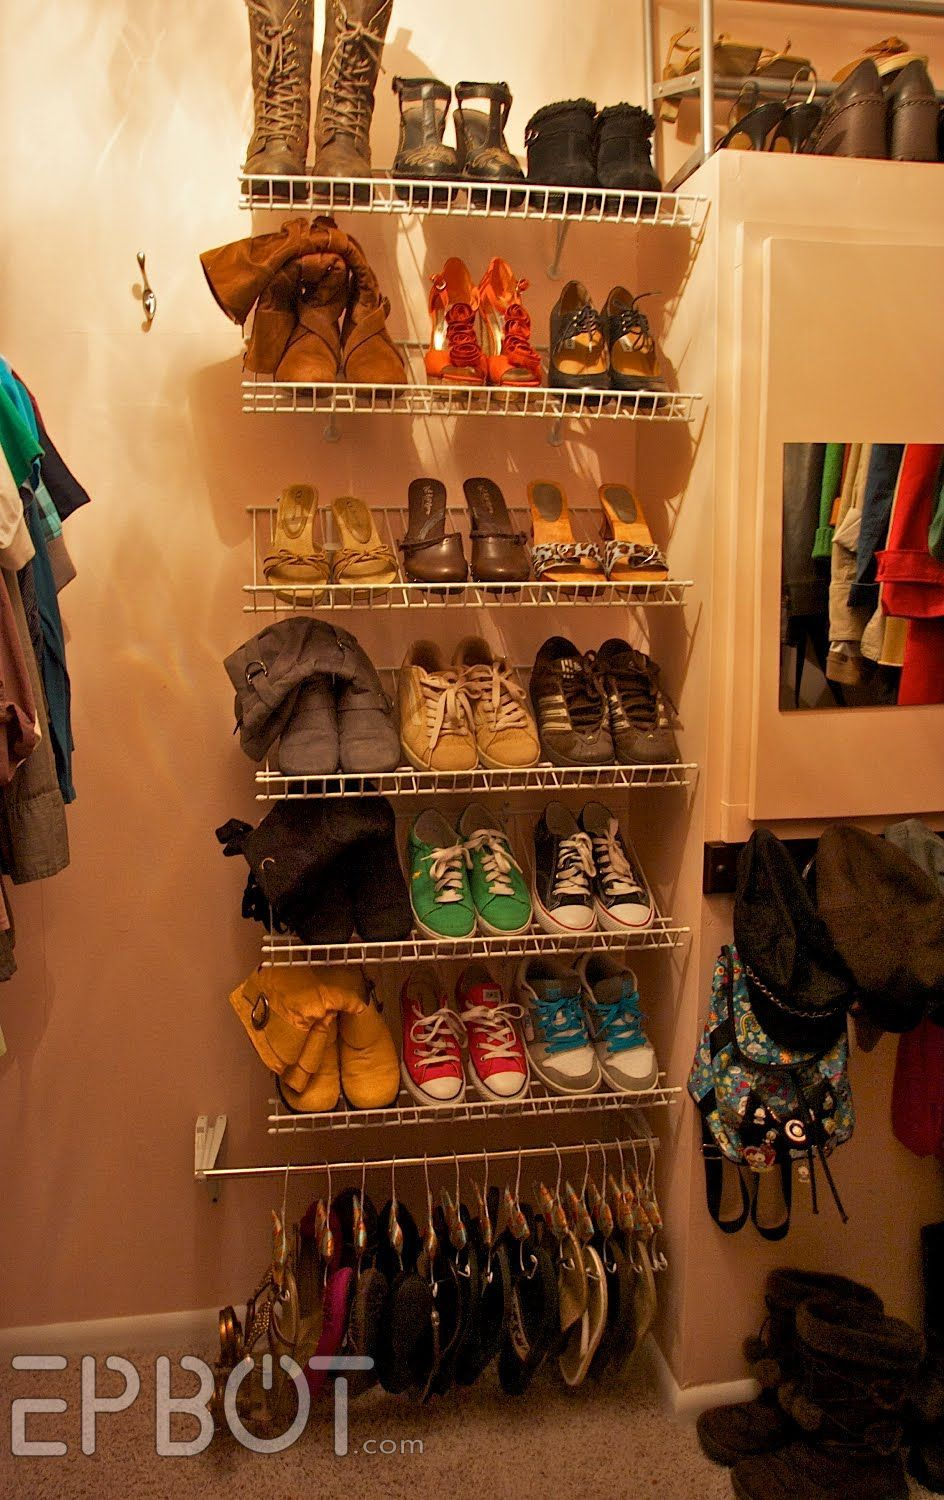 Use Bottom side of wire shelving as shoe racks! Can get home depot ...